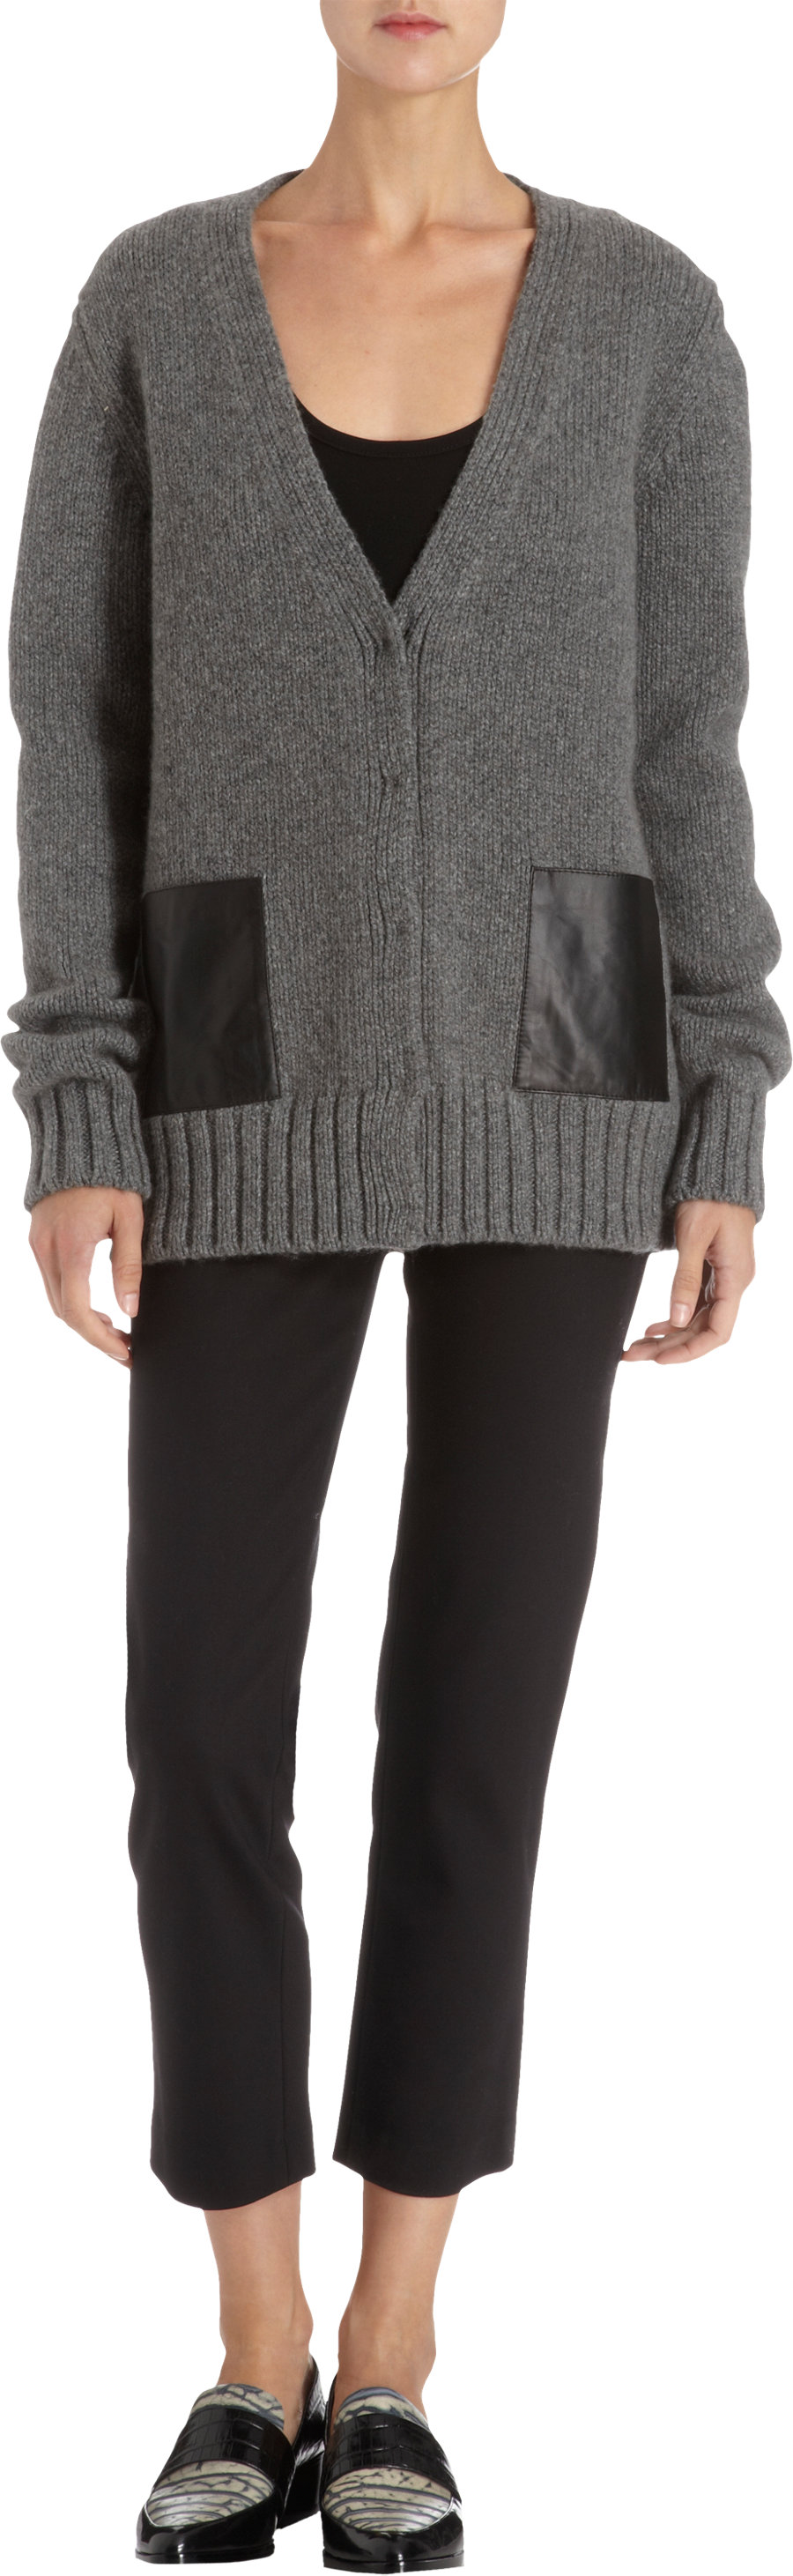 womens cardigan sweater with pockets | Womens Cardigans ...